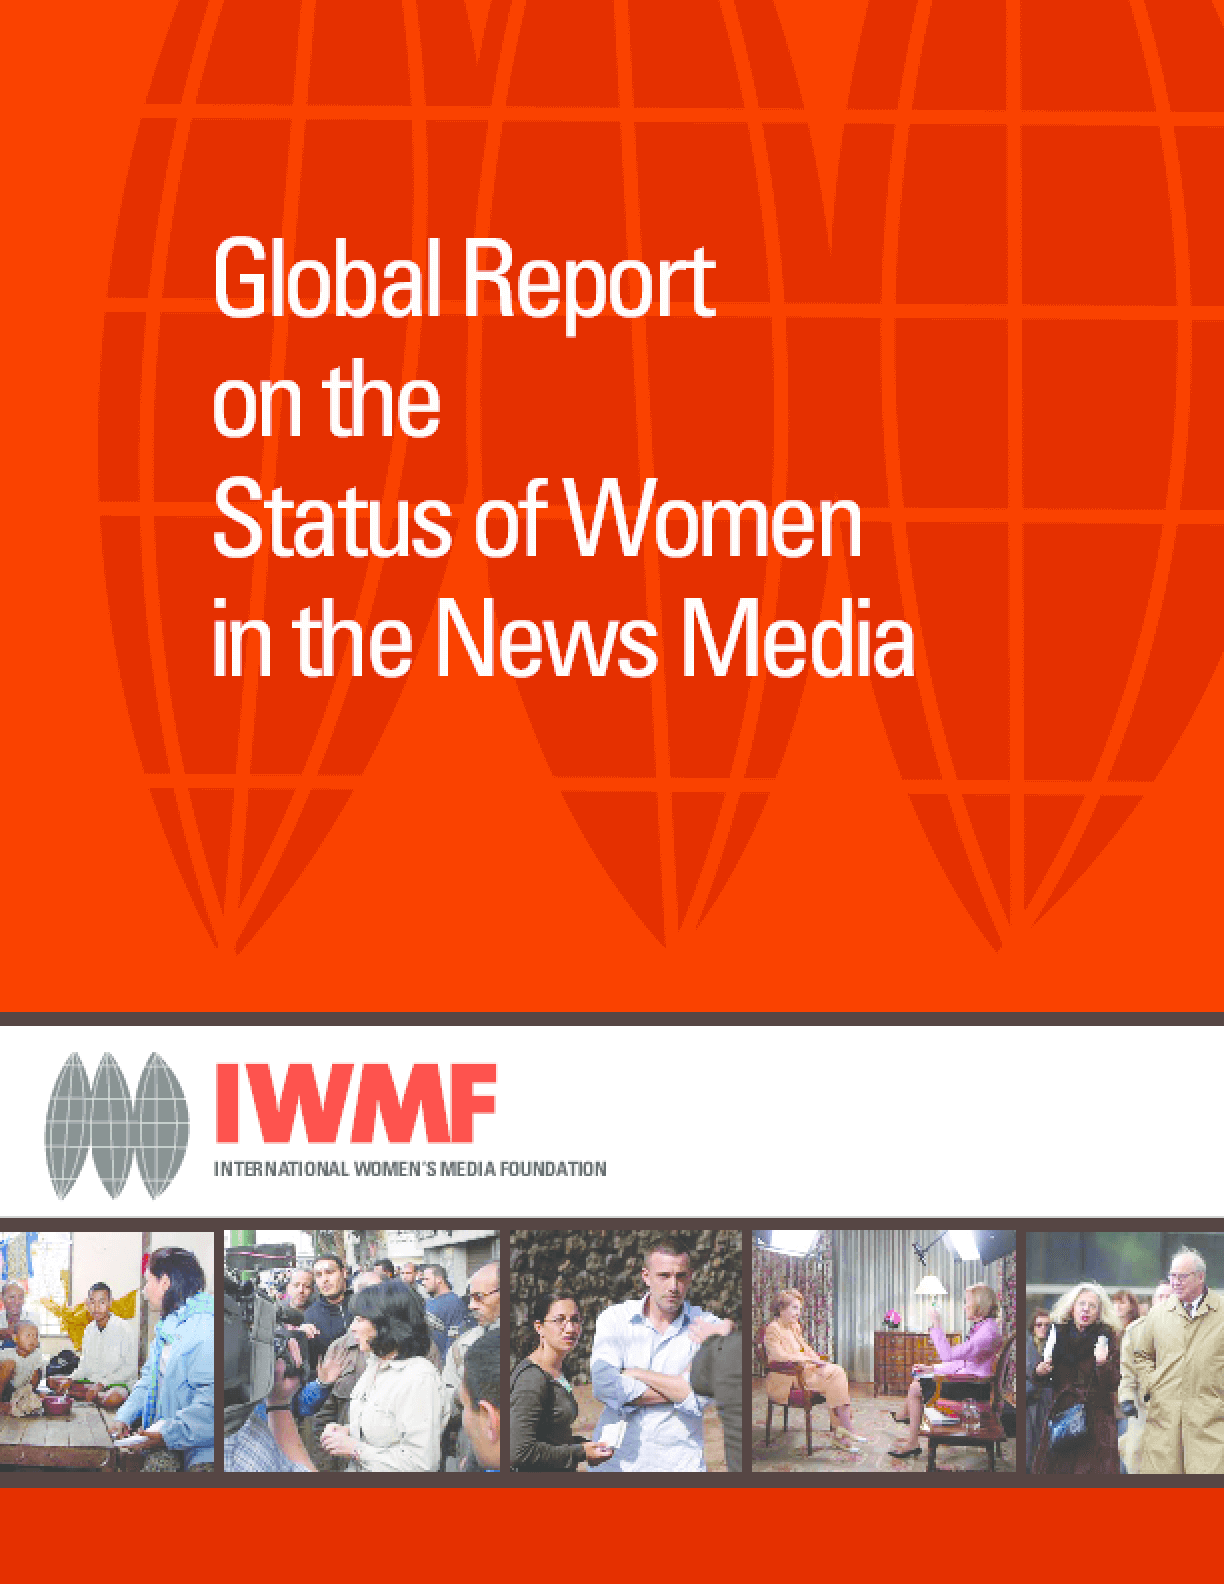 Global Report on the Status of Women in the News Media